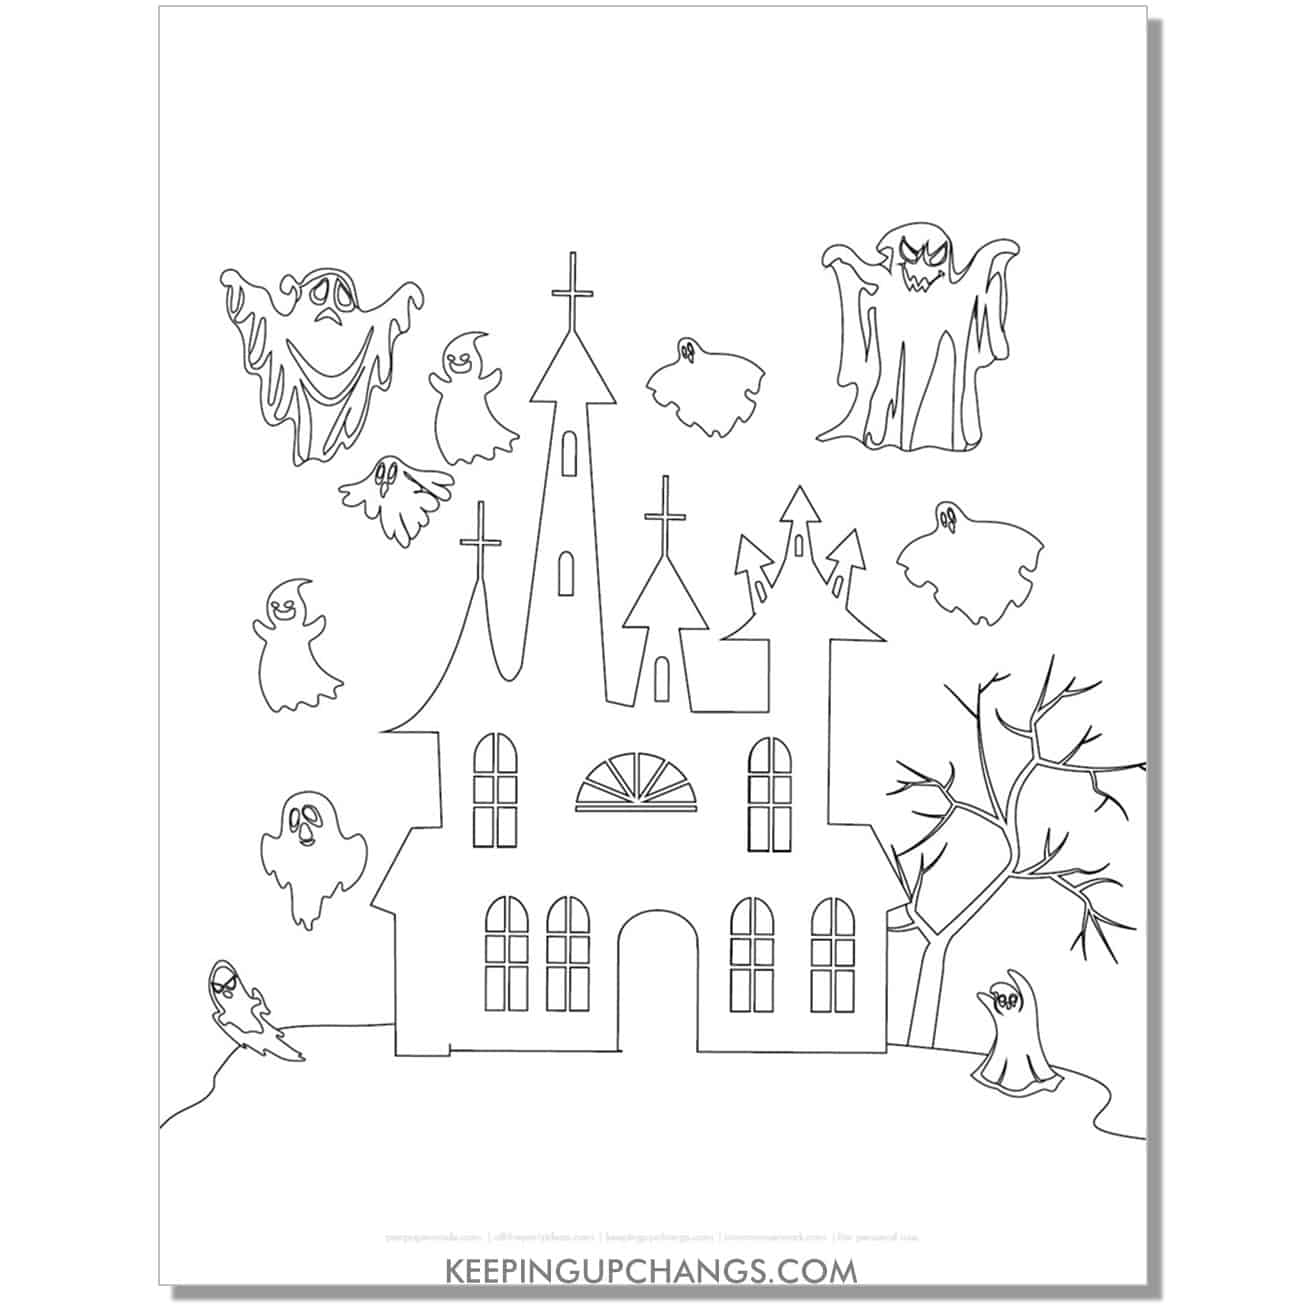 free haunted church with ghosts coloring page.